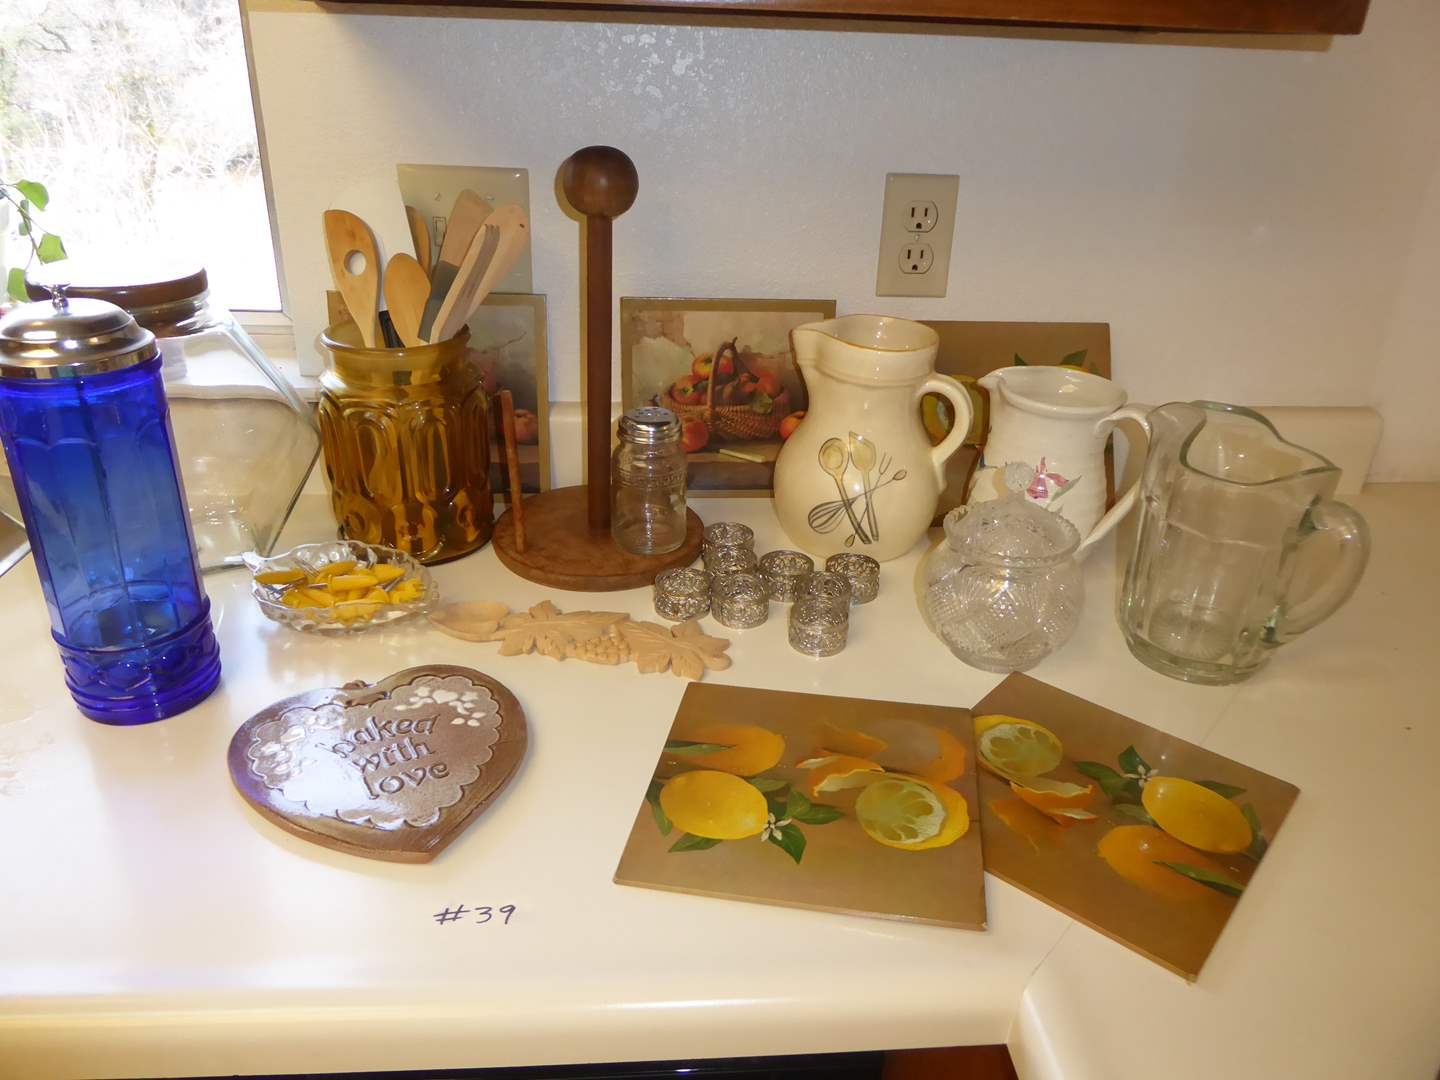 Lot # 39 - Pitchers, Glass Straw Holder, Corn Holders & More  (main image)